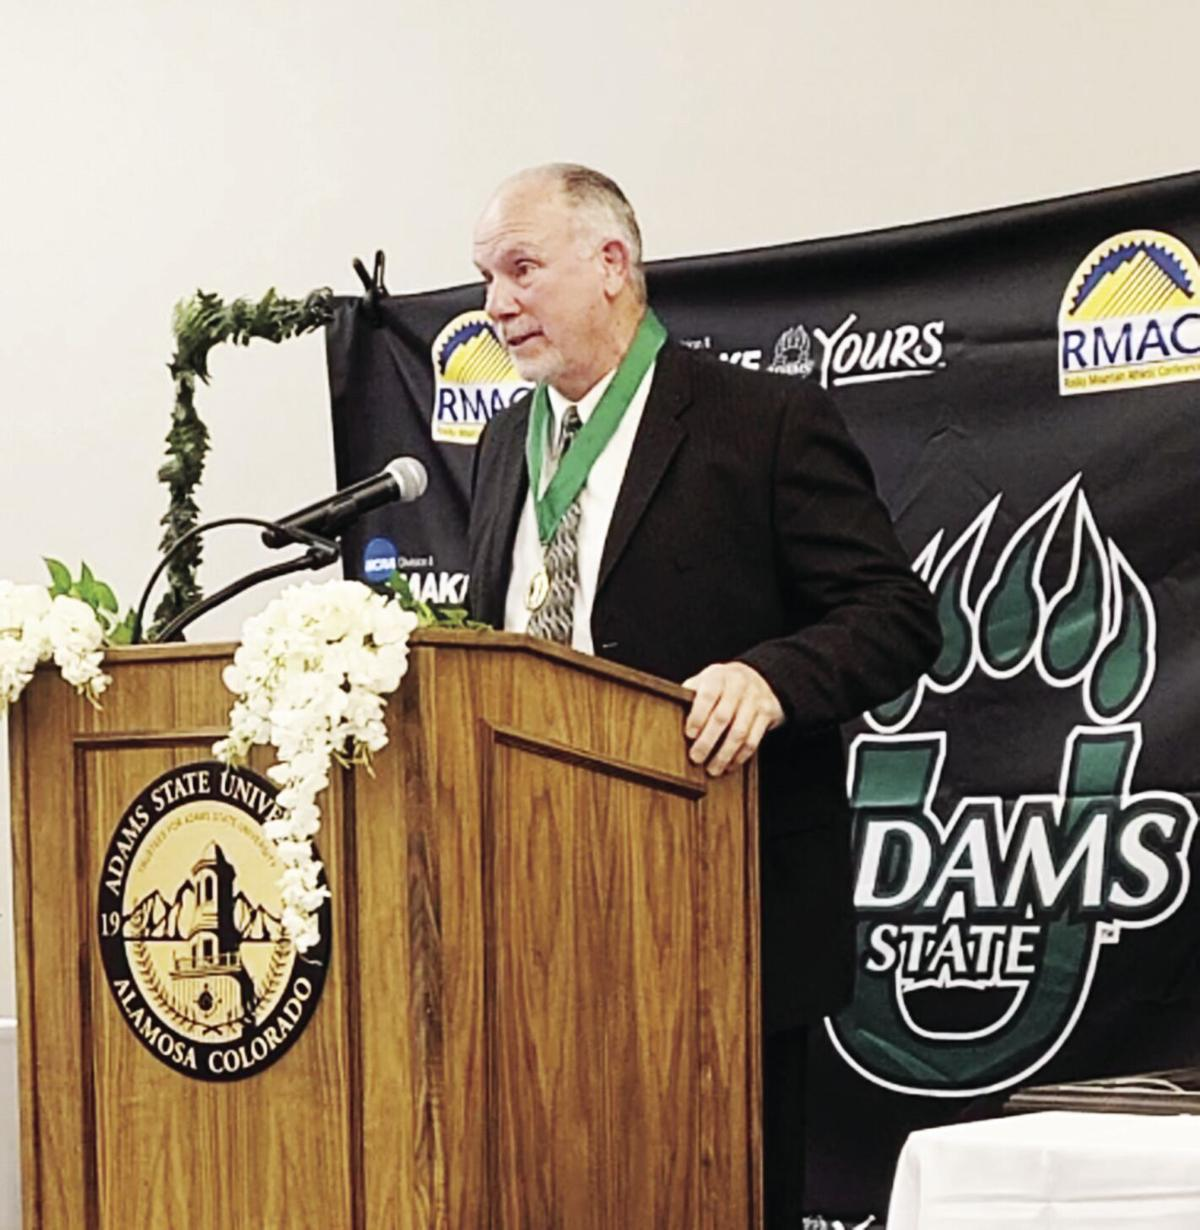 Mentally tough: Palmer inducted into Athletic Hall of Fame at Adams State College after  distinguished wrestling career